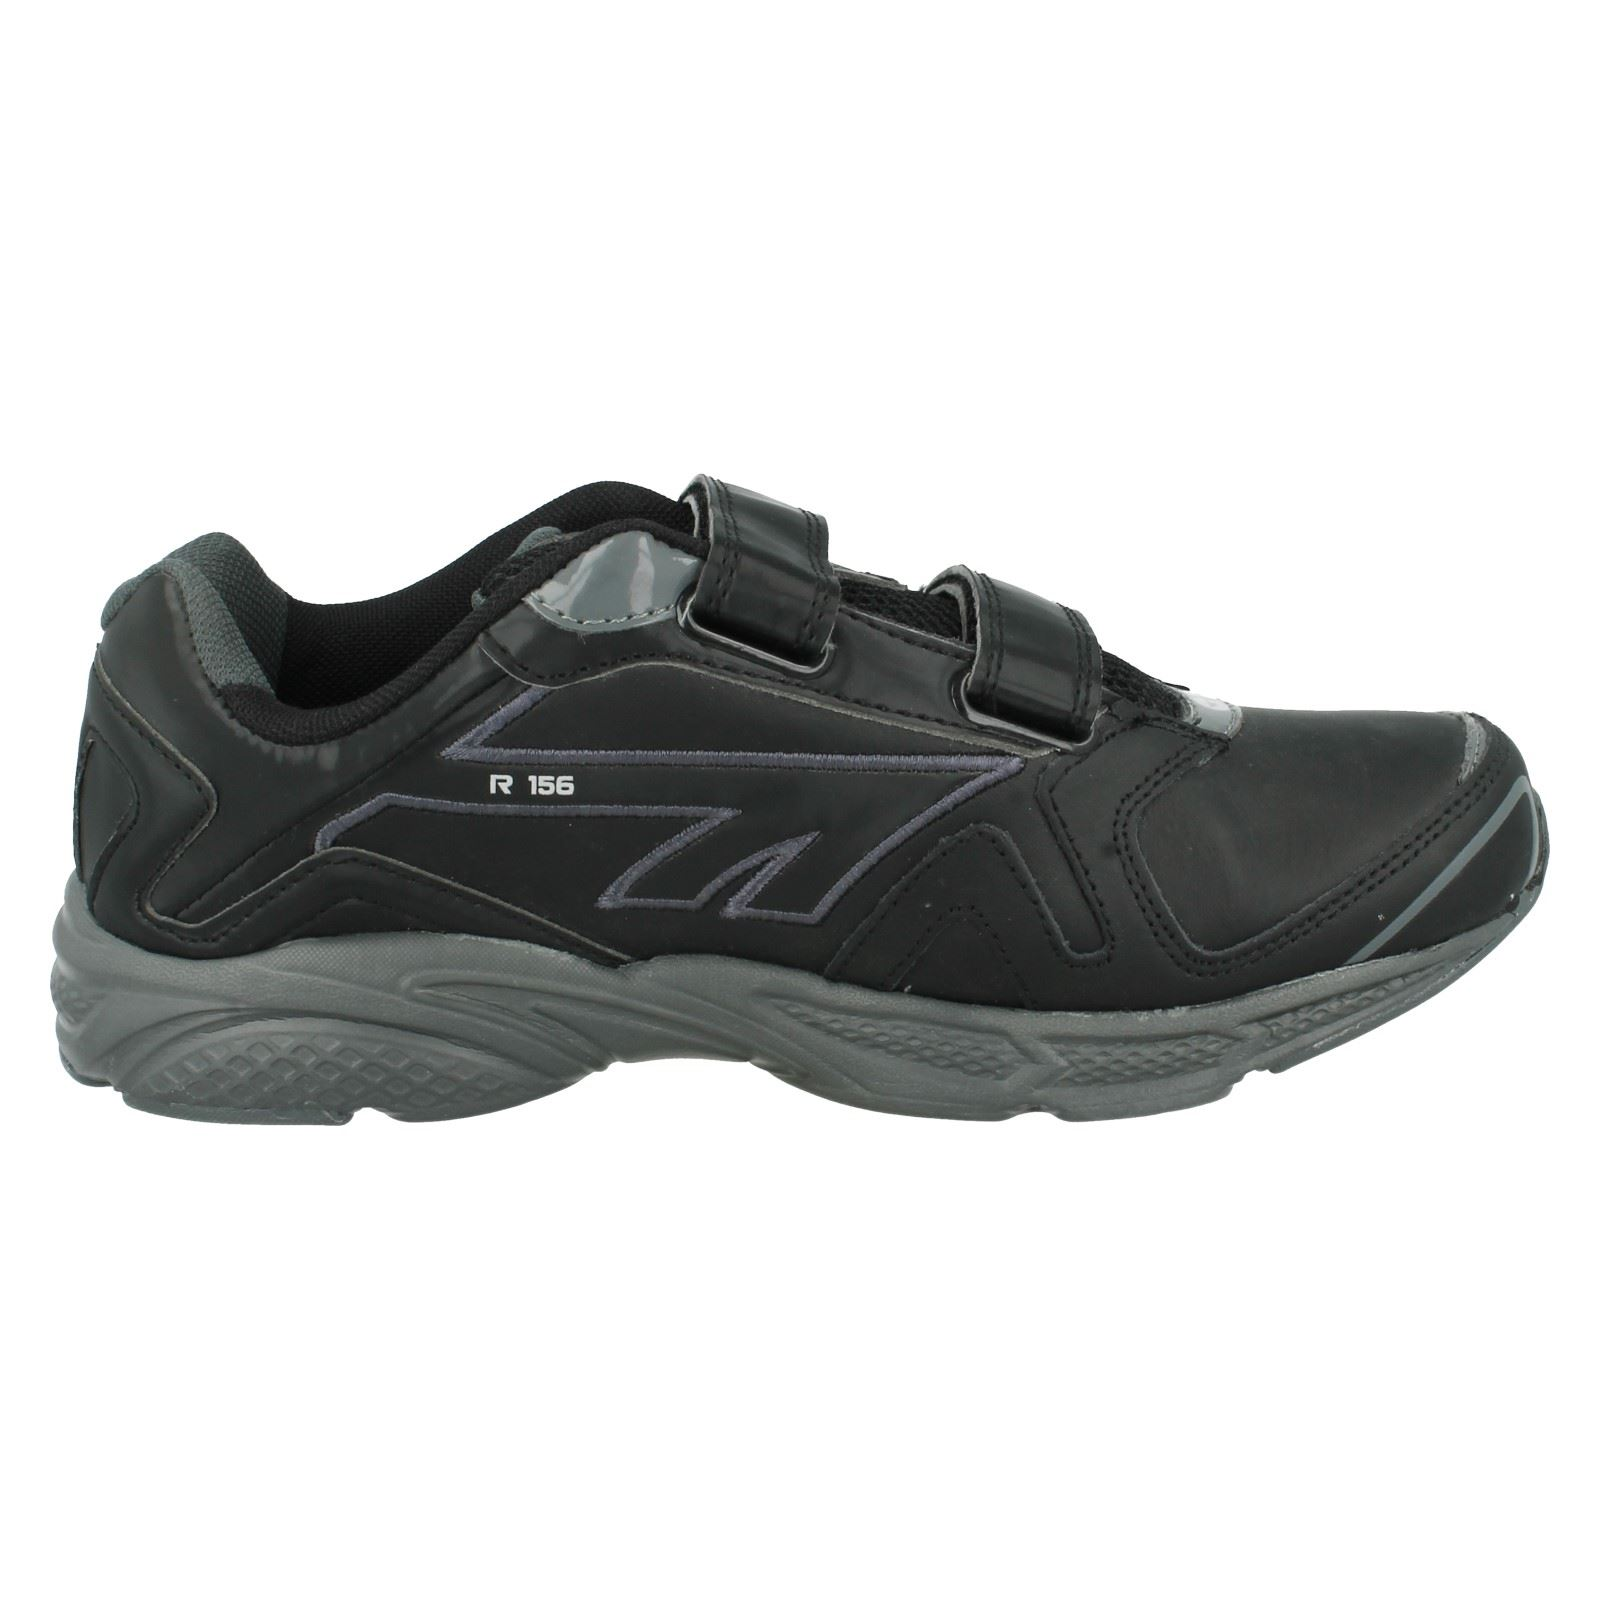 Mens/Boys Hi-Tec Label R156 Trainers